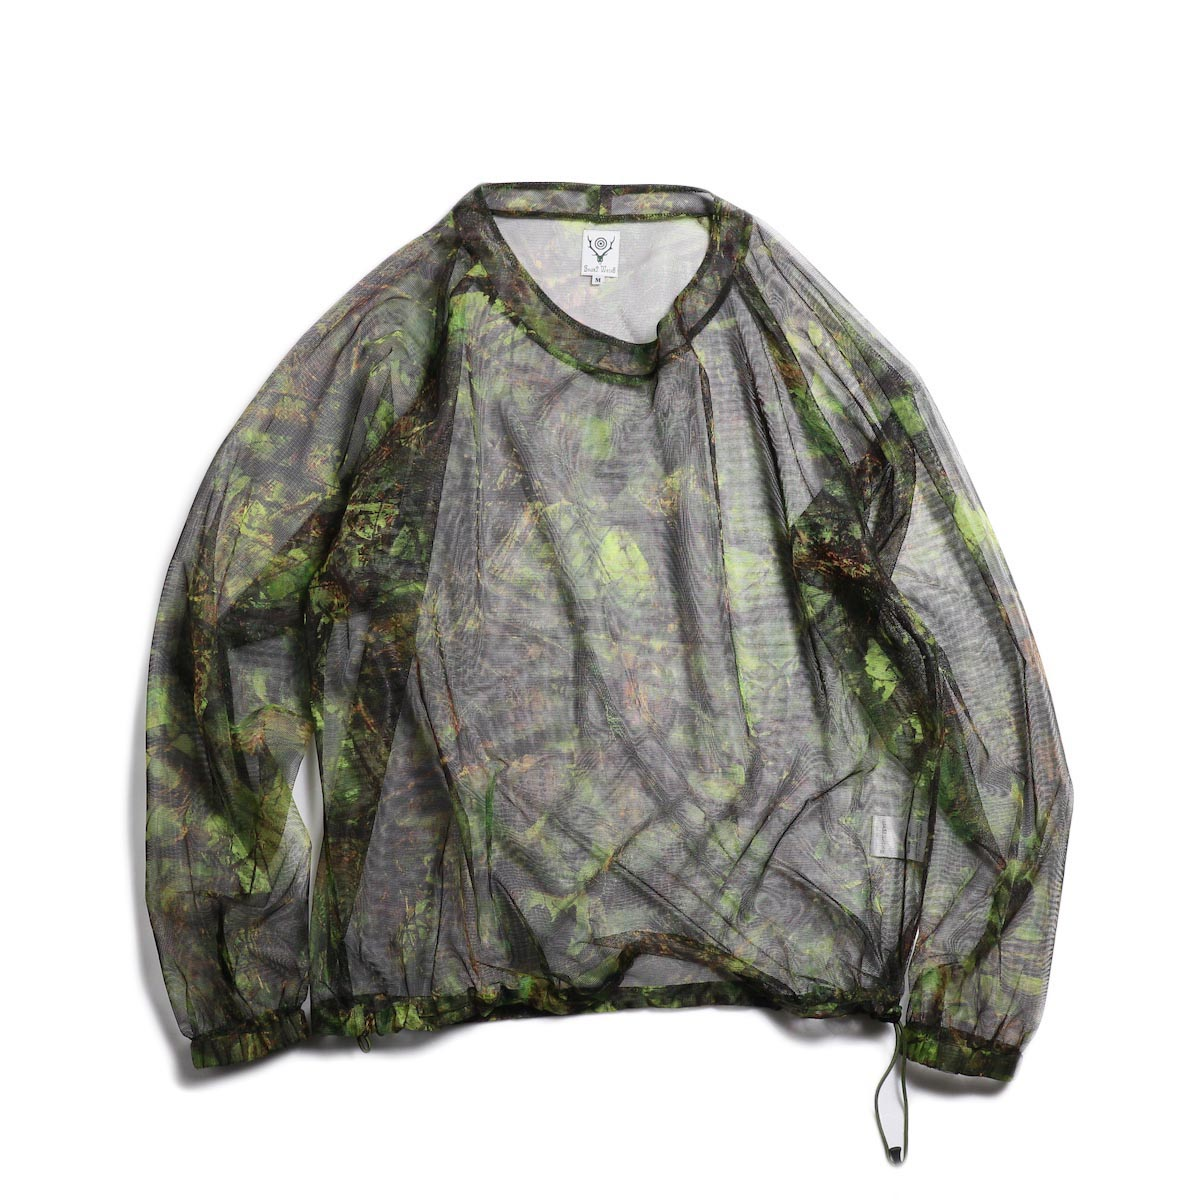 SOUTH2 WEST8 / Bush Shirt -Mesh Print (S2W8 Camo)